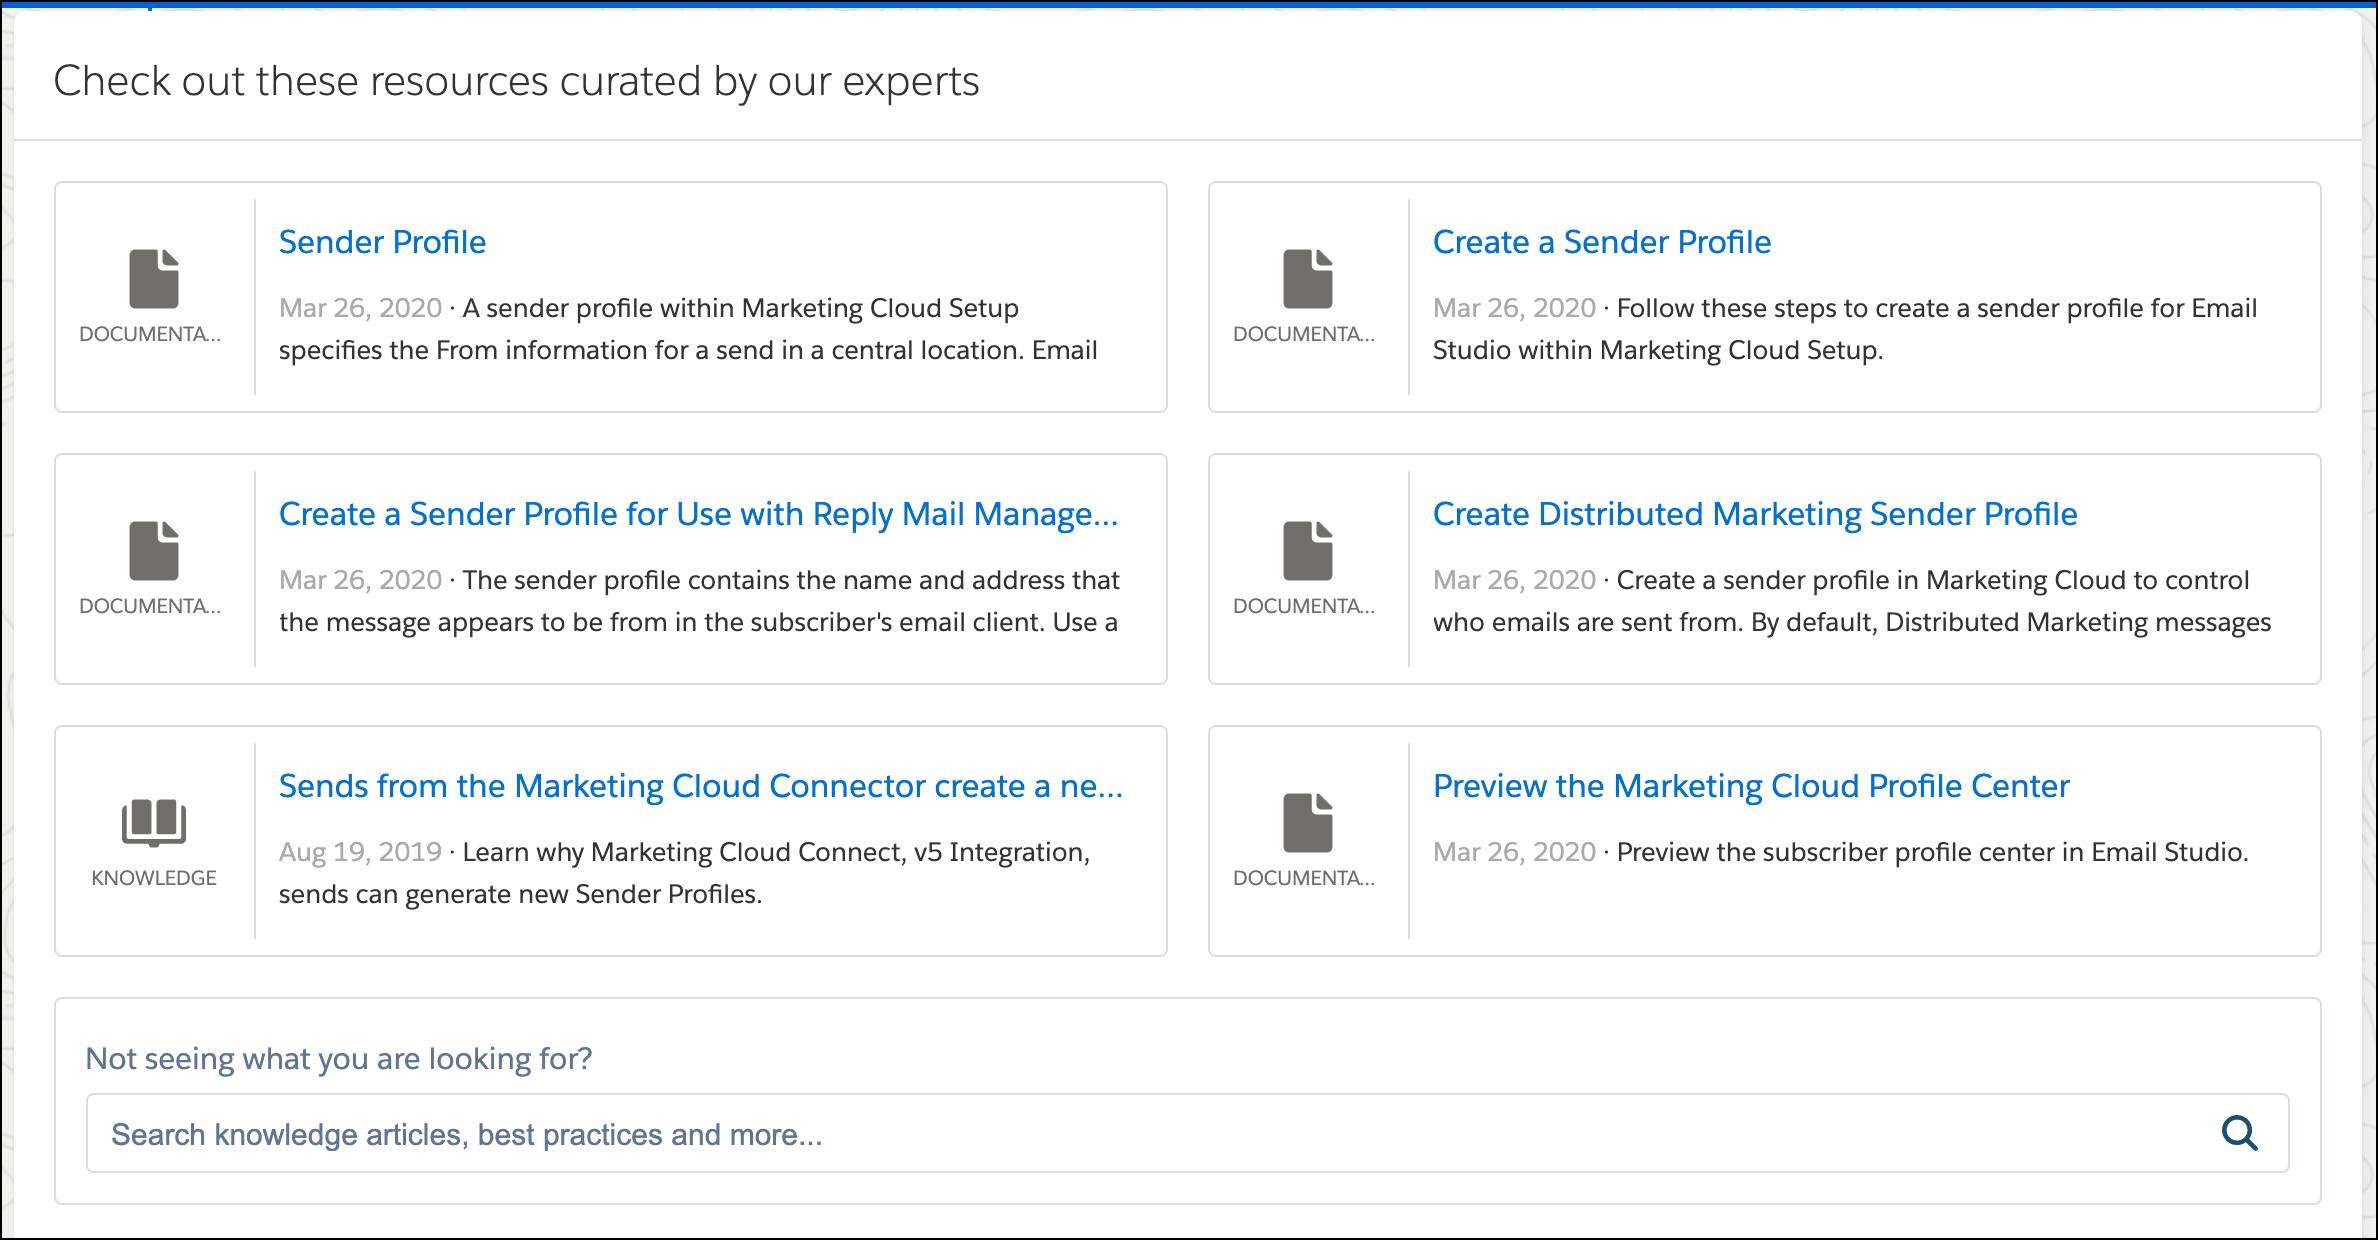 Suggested resources related to a sender profile issue.